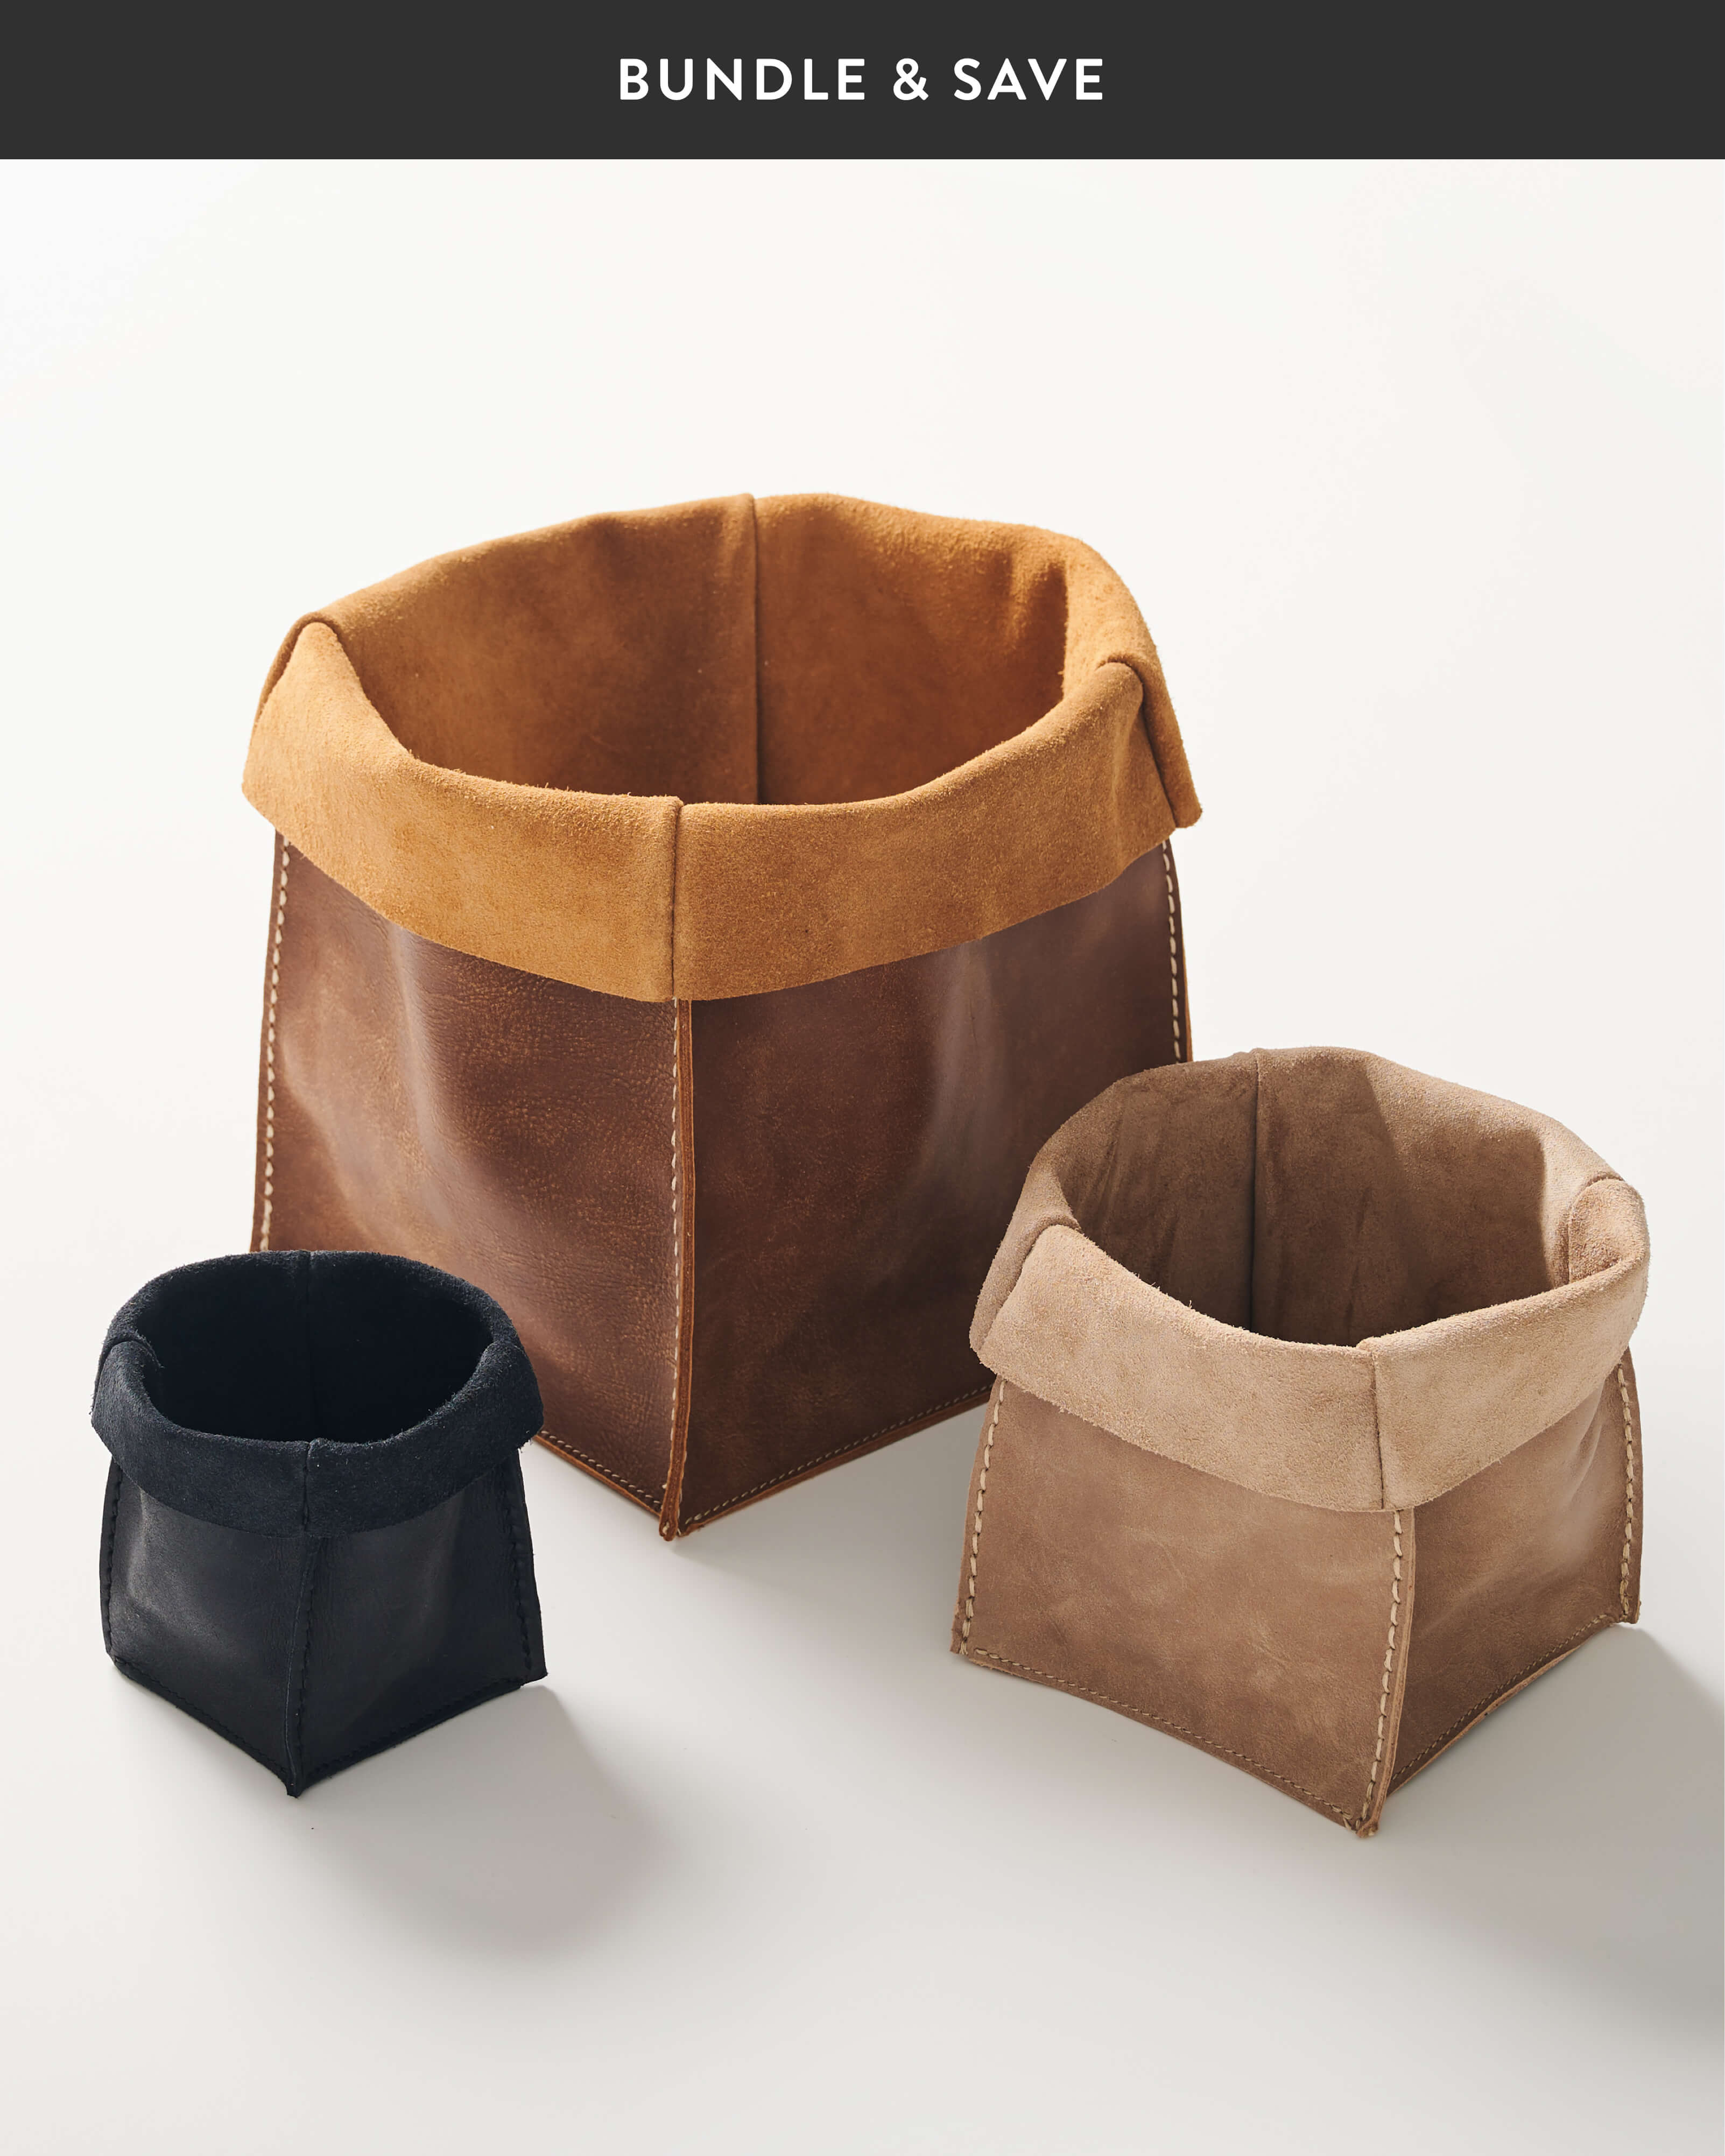 Roots-Leather Leather Accessories-Shop The Look: Home Accessories Bundle -2